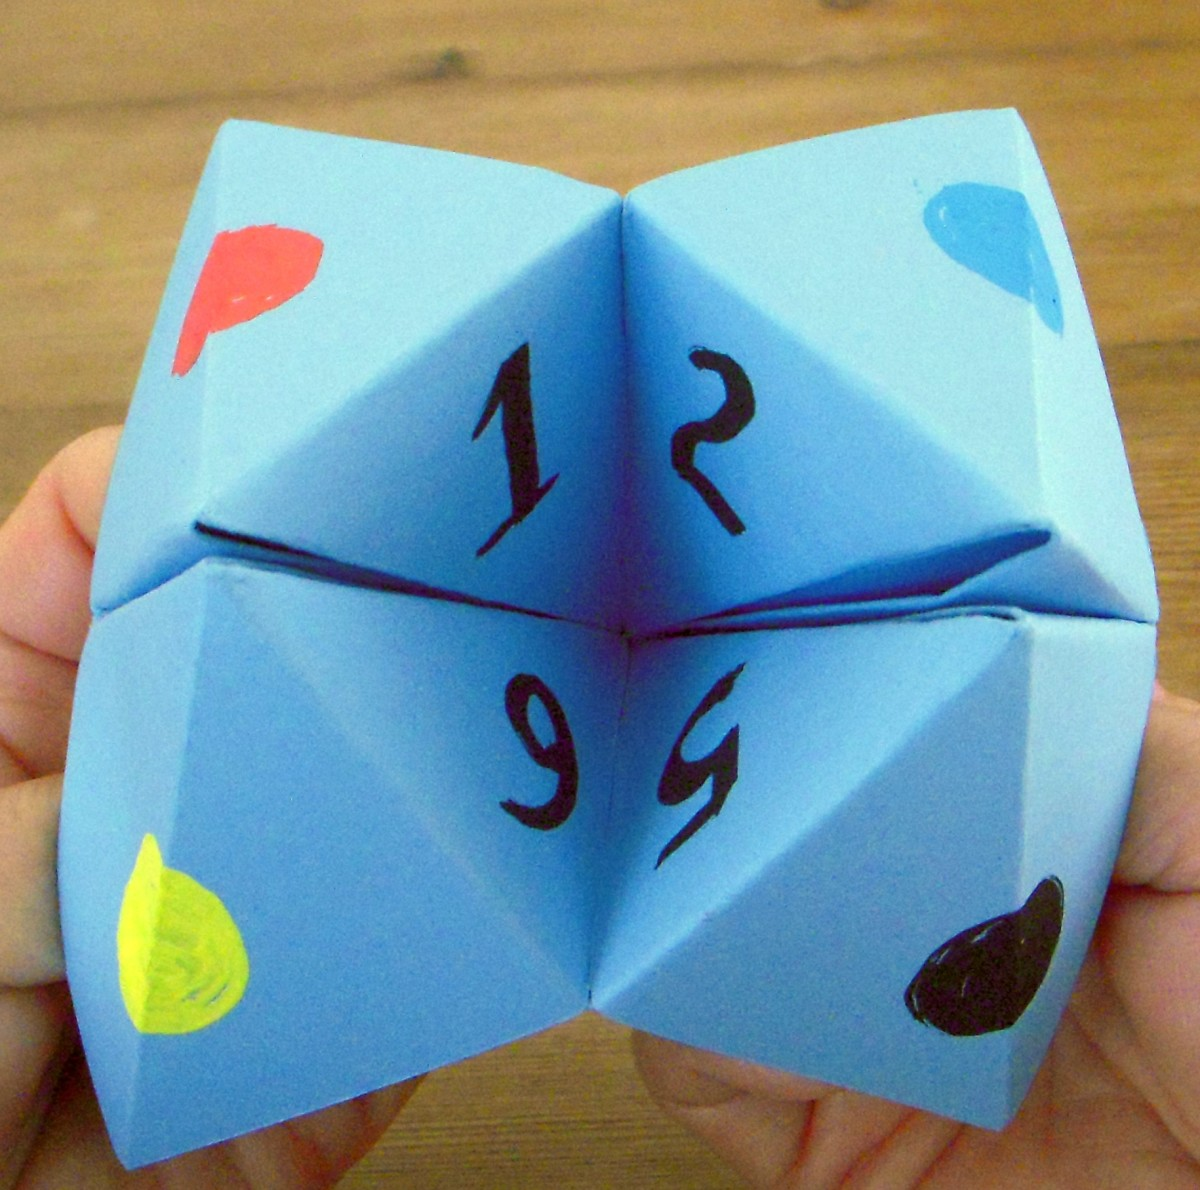 Make a paper cootie catcher and play the fortune telling game.